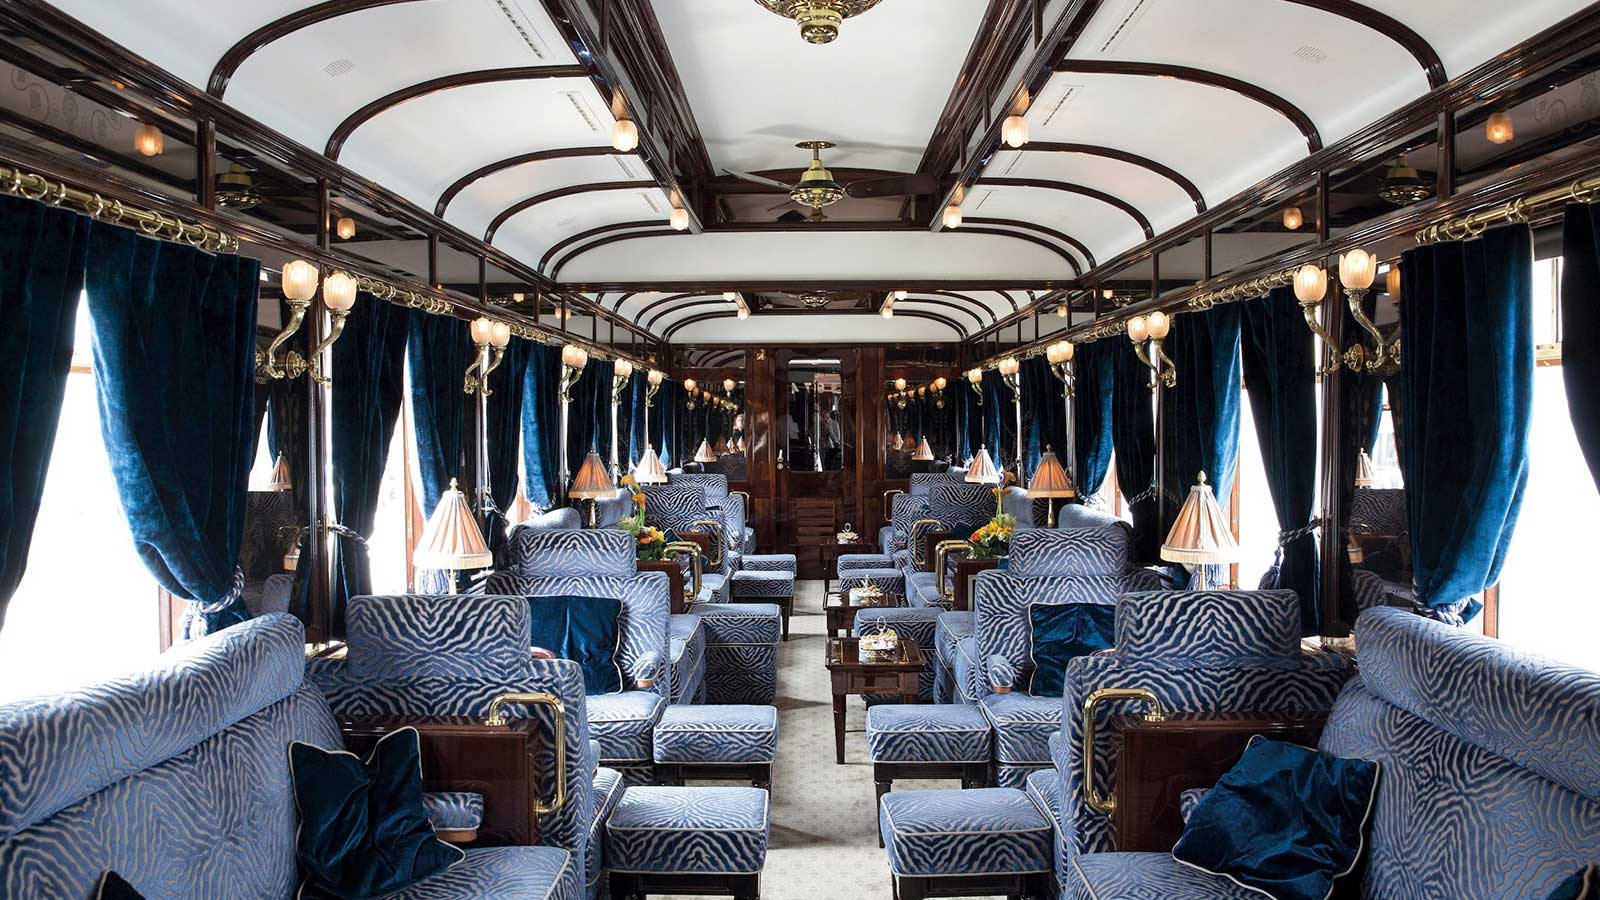 Travel The Iconic Route of the Orient Express